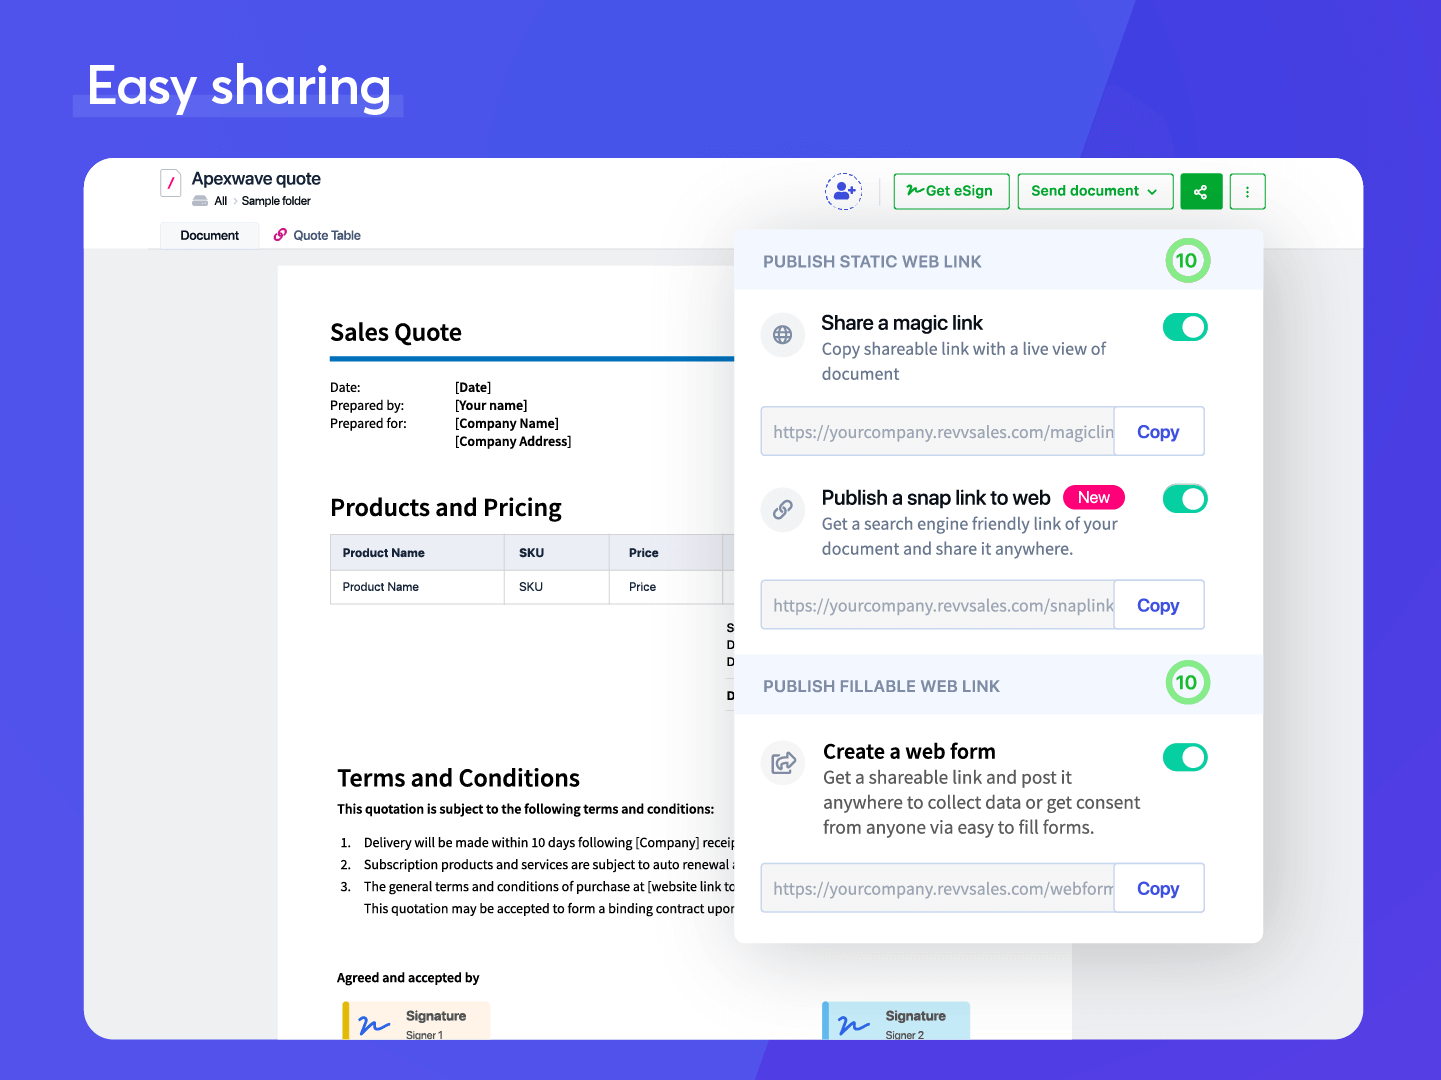 Revv Software - EASY SHARING - Multiple choices to share documents online via email, magic links (for live view of documents), snap links, and web forms.